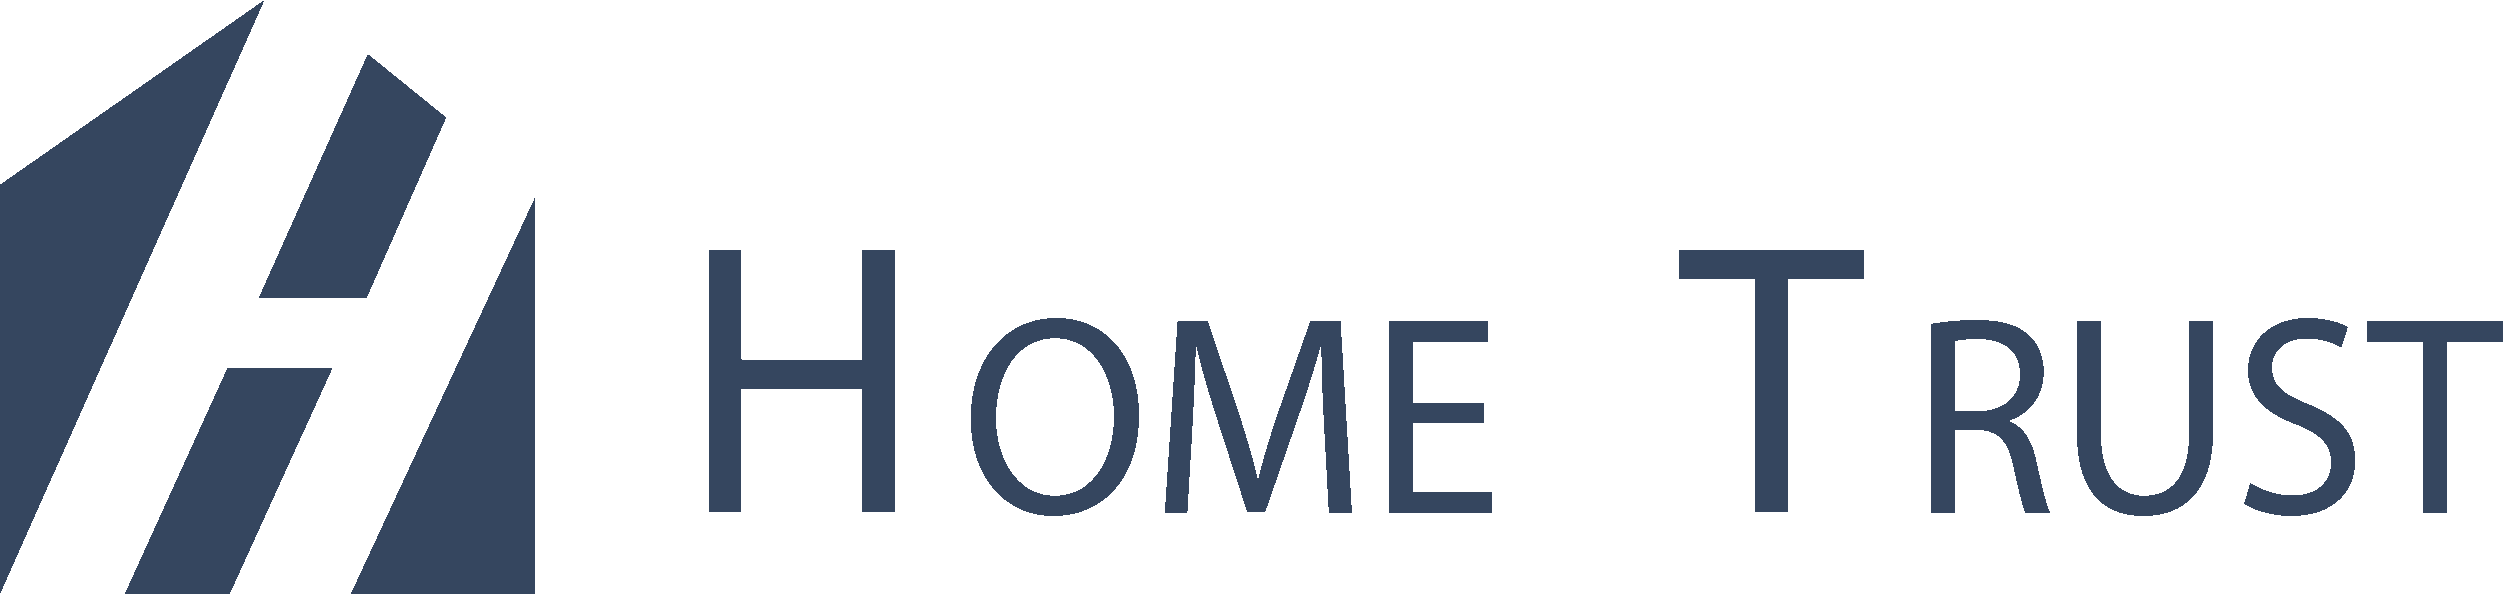 Home Trust credit cards